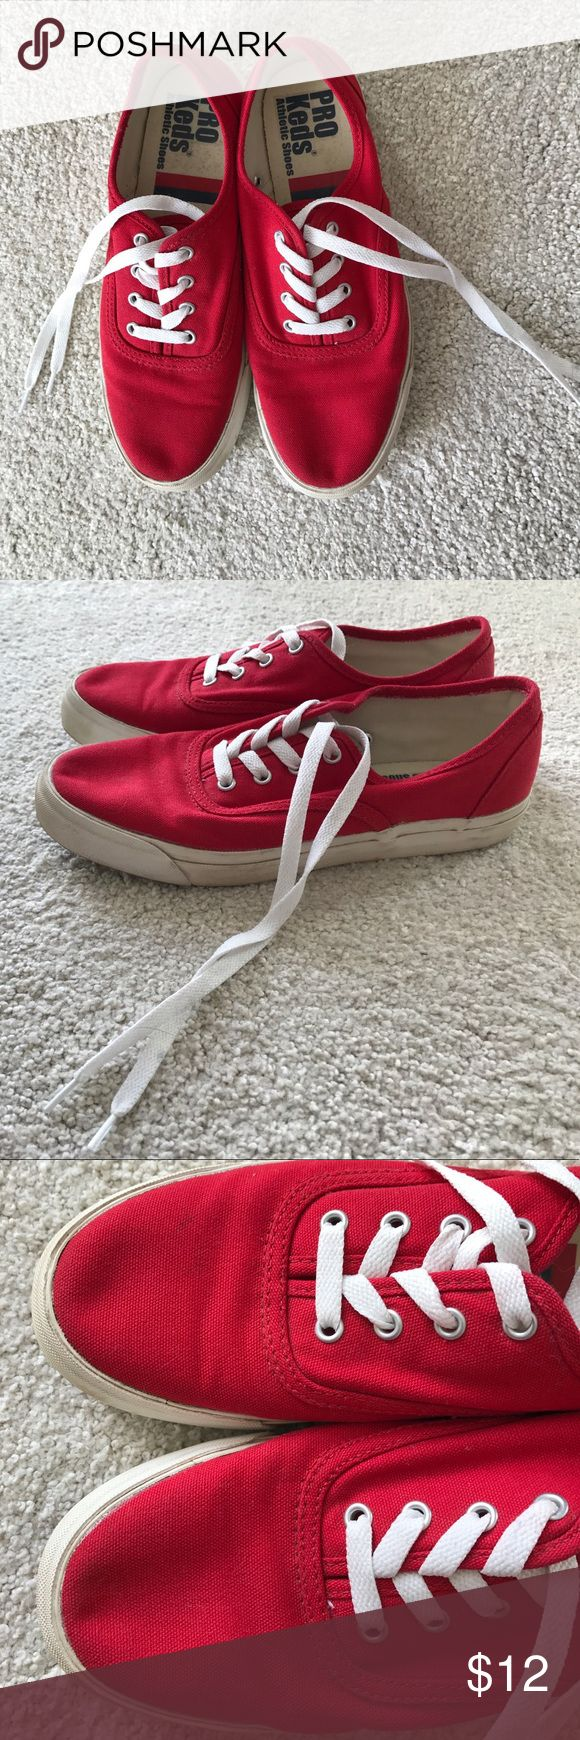 Red Pro Keds shoes Red Pro Keds sneakers. Size 7.5. Like new. Maybe worn them twice. Just been sitting in the closet. No tags and no box Keds Shoes Sneakers